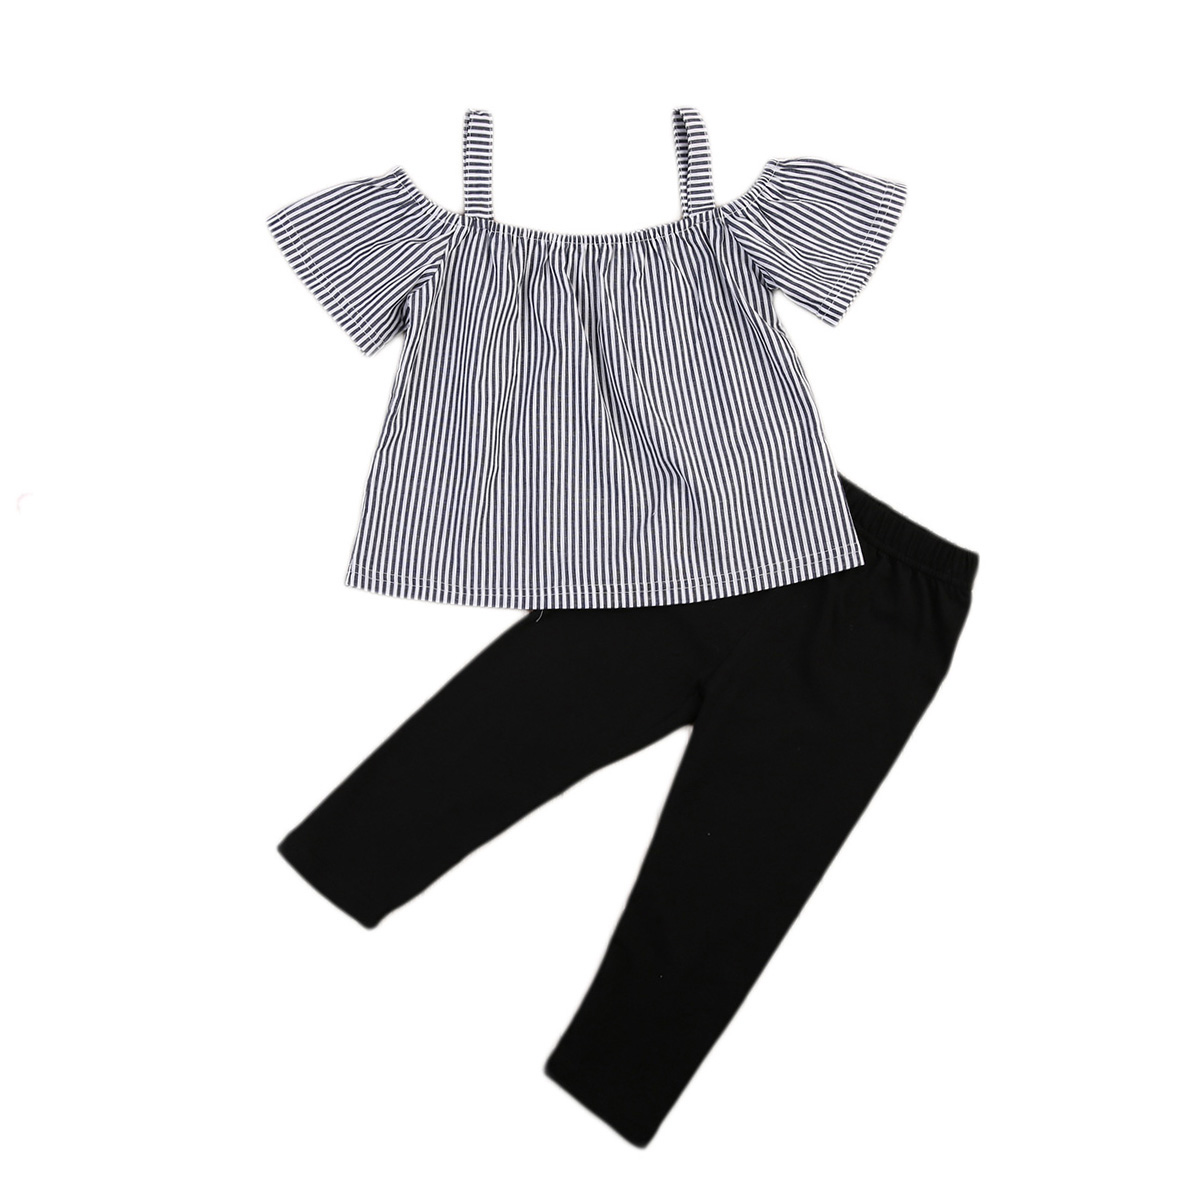 Girls Tops Cute Pants Outfit Clothes Newborn Kids Baby Girl Clothing Sets Summer Off Shoulder Striped Short Sleeve 1-6T girls tops cute pants outfit clothes newborn kids baby girl clothing sets summer off shoulder striped short sleeve 1 6t